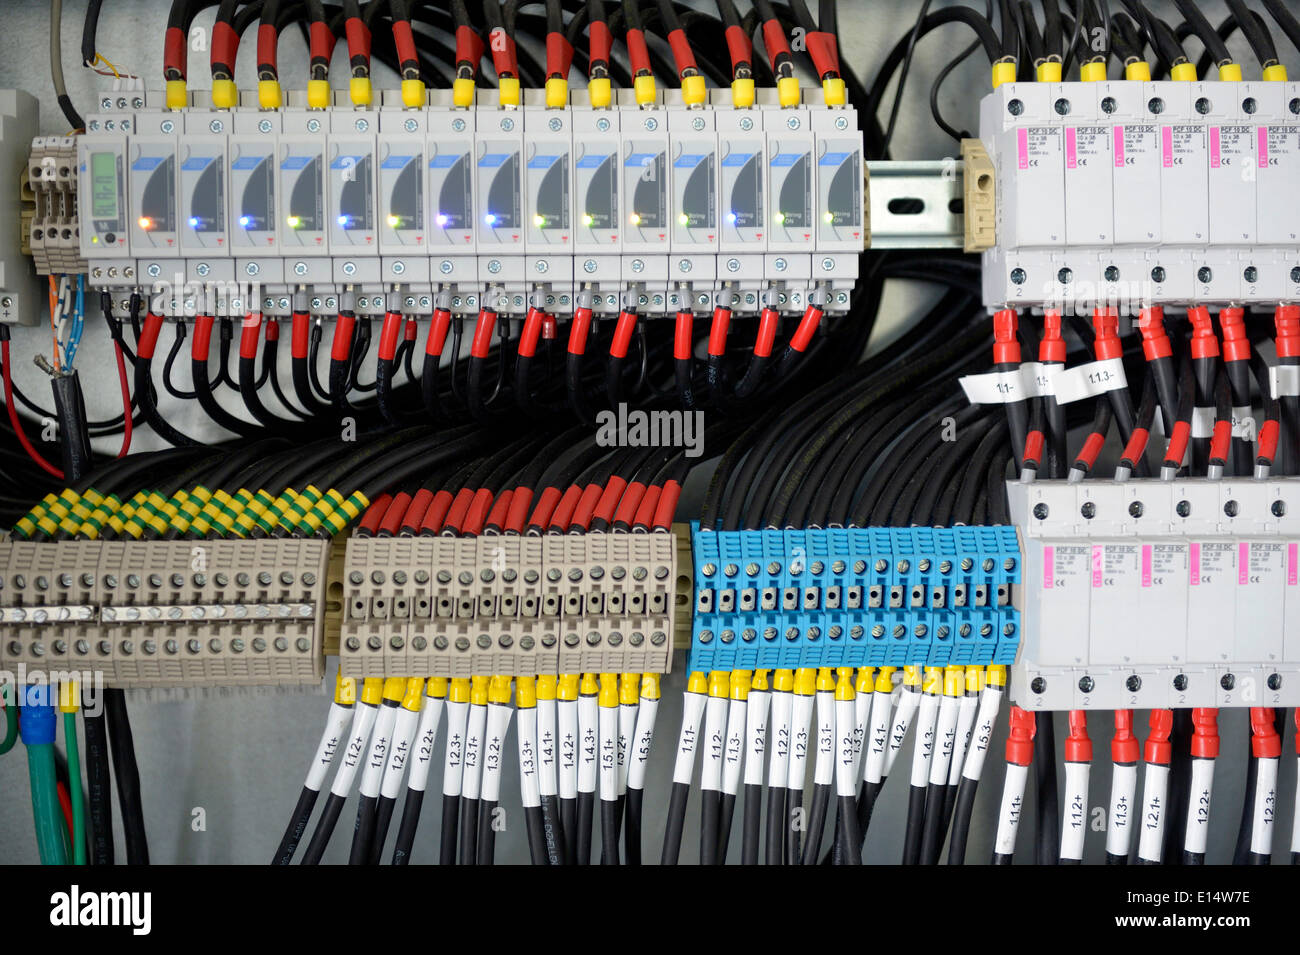 hight resolution of fuse box cables wiring diagram showfuse box with many cables stock photo 69563746 alamy fuse box